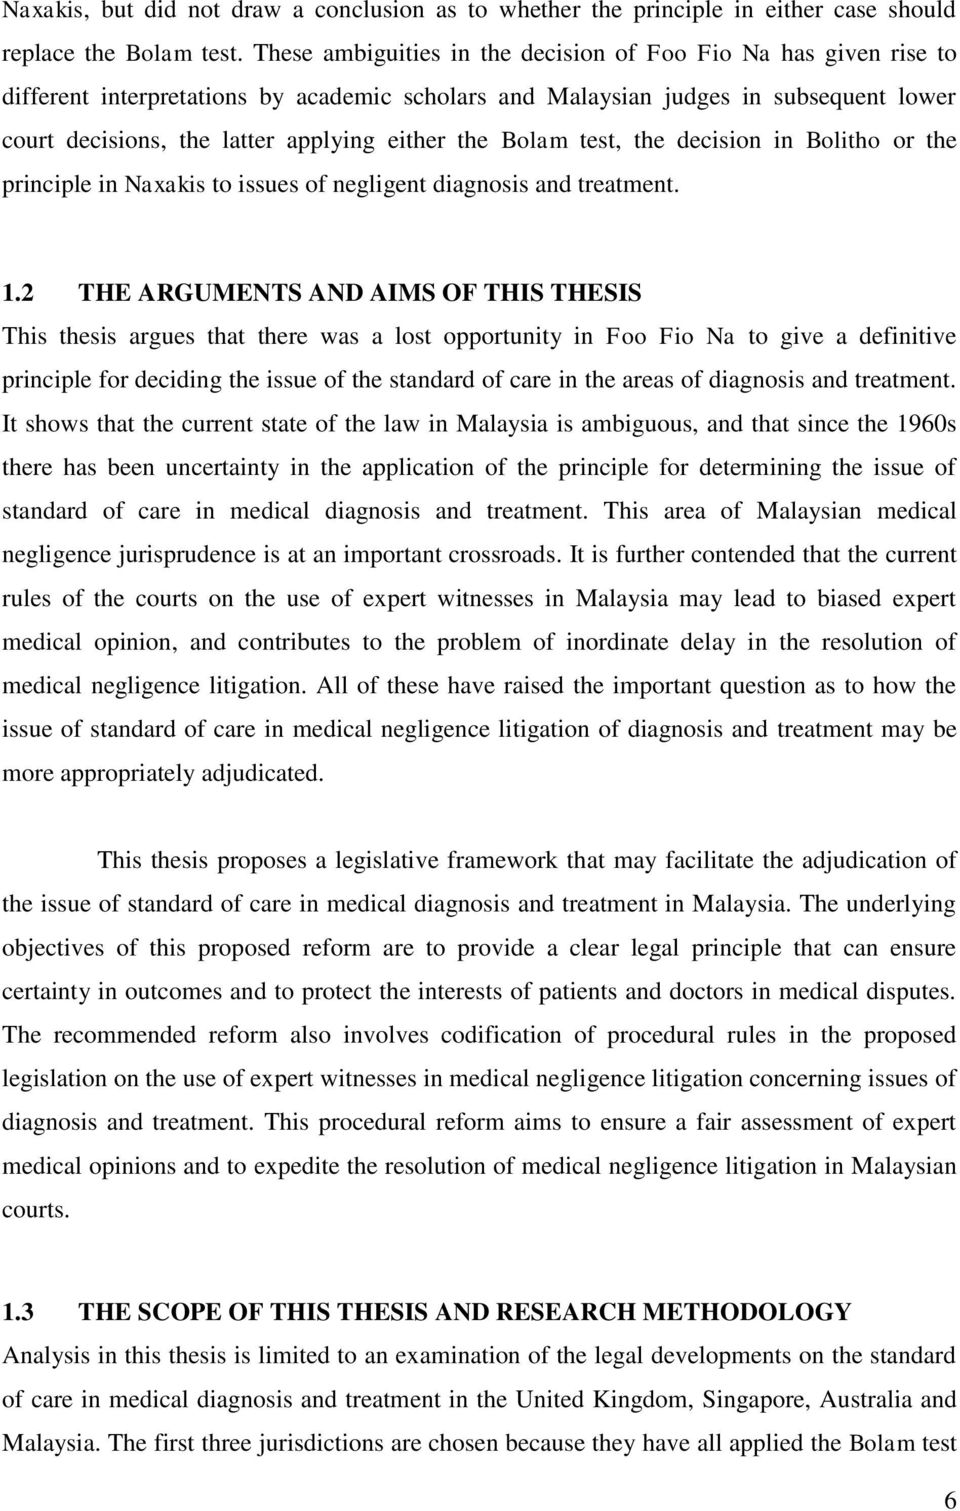 the Bolam test, the decision in Bolitho or the principle in Naxakis to issues of negligent diagnosis and treatment. 1.